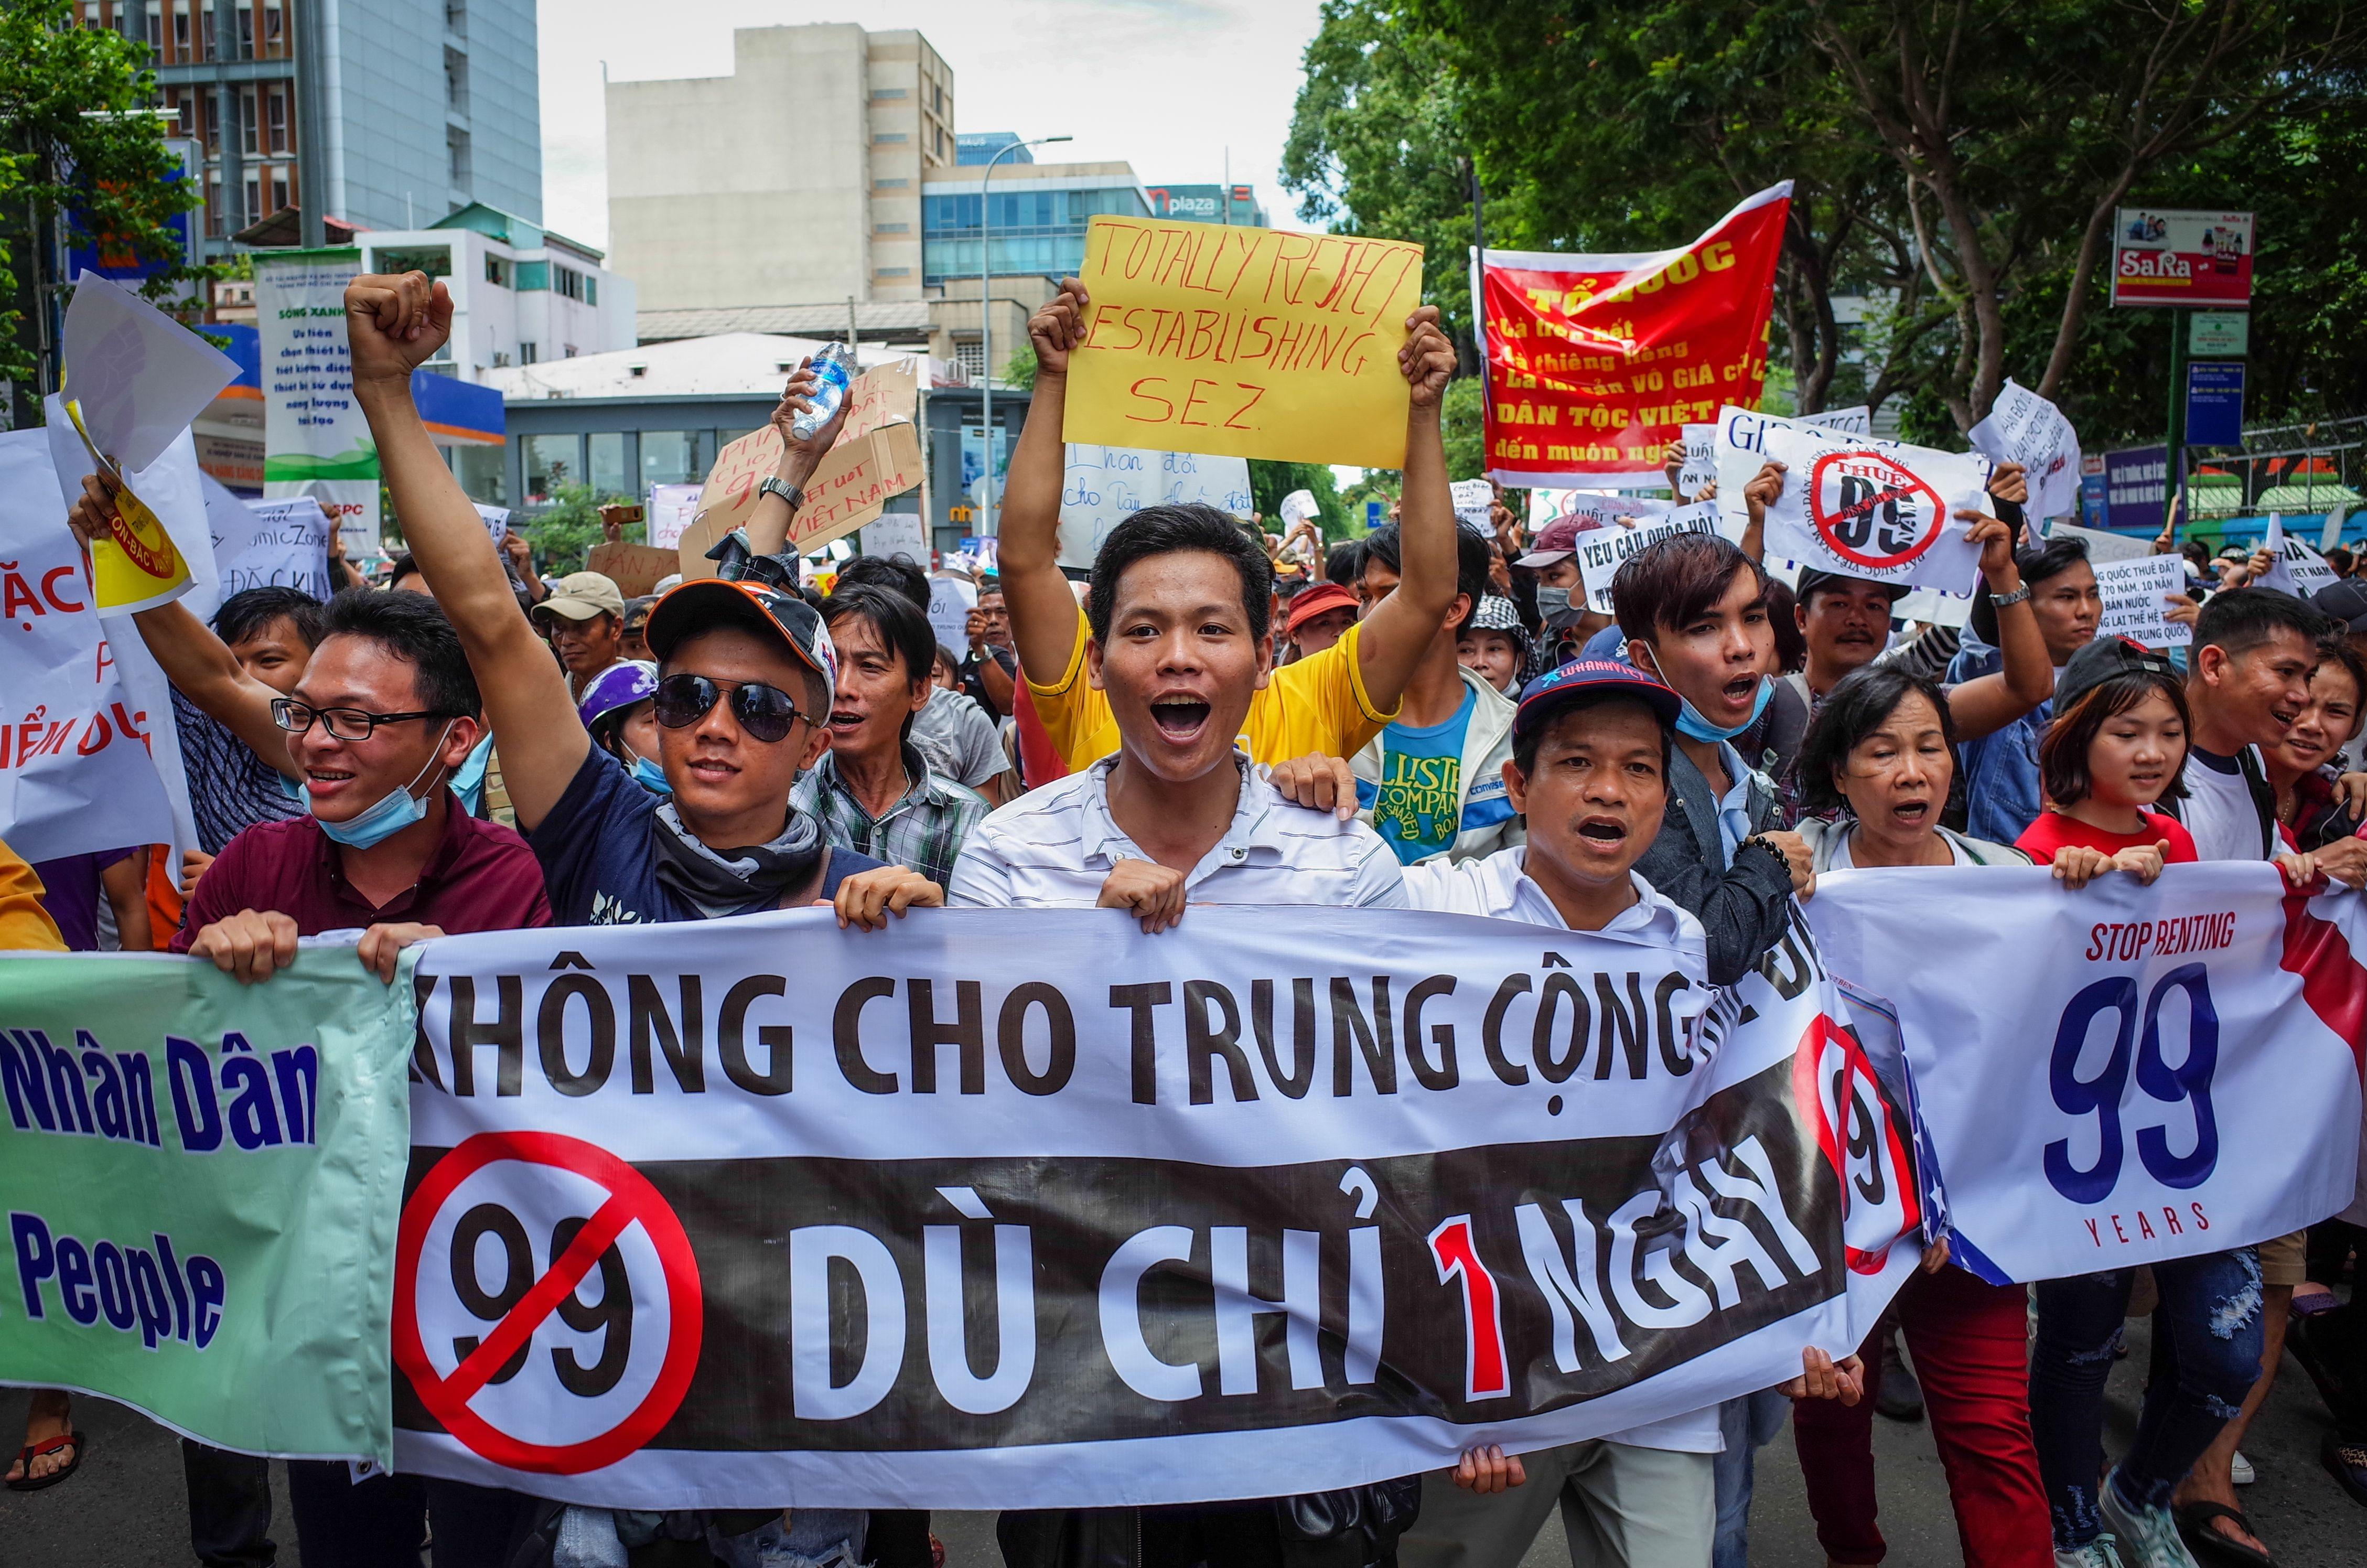 American University Student Arrested in Police Crackdown on Protests in Vietnam